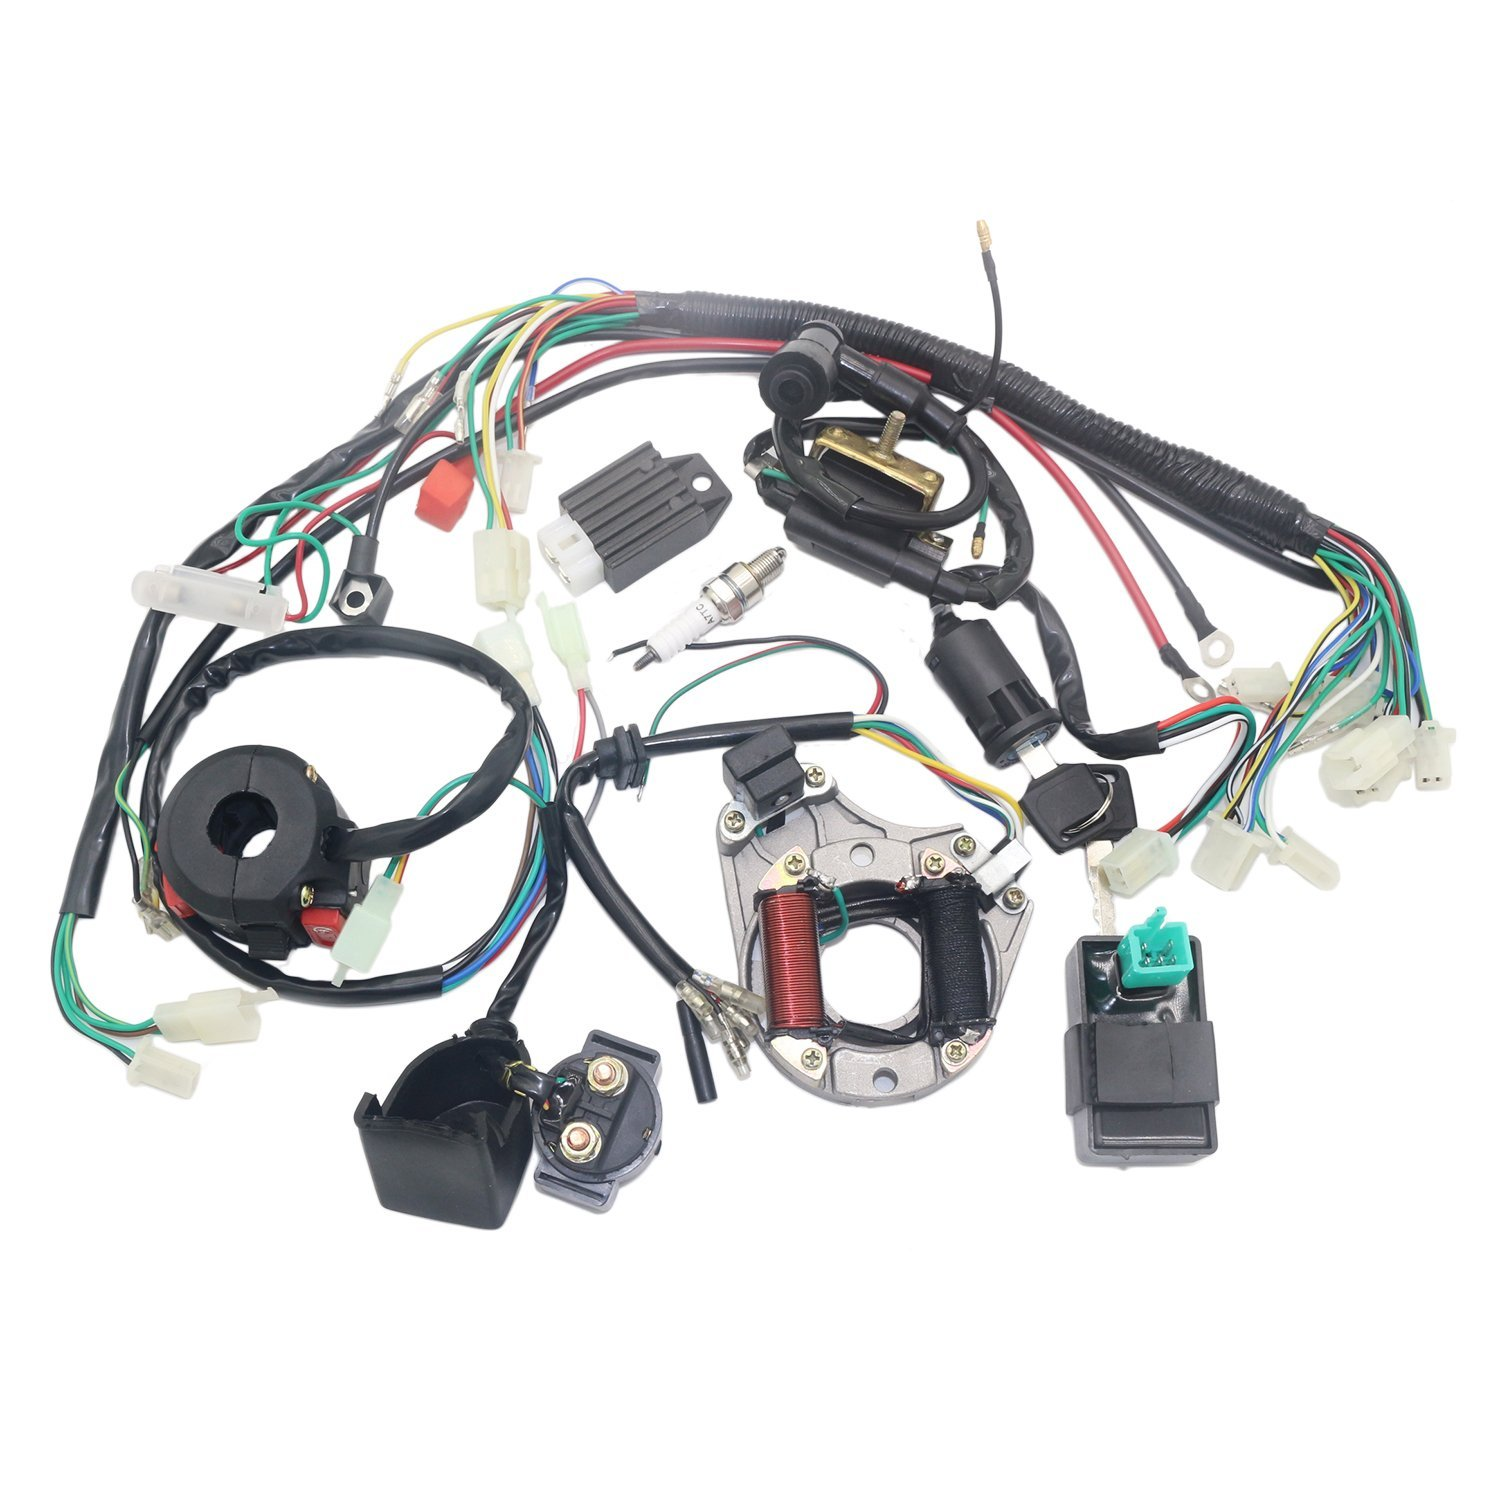 Jingke Complete Electrics Stator Coil Cdi Wiring Harness Dirt Pit Bike Kill Switch Ignition Set 110 125 For 4 Stroke Atv Klx 50cc 70cc 110cc 125cc Quad Buggy Go Kart Bikes